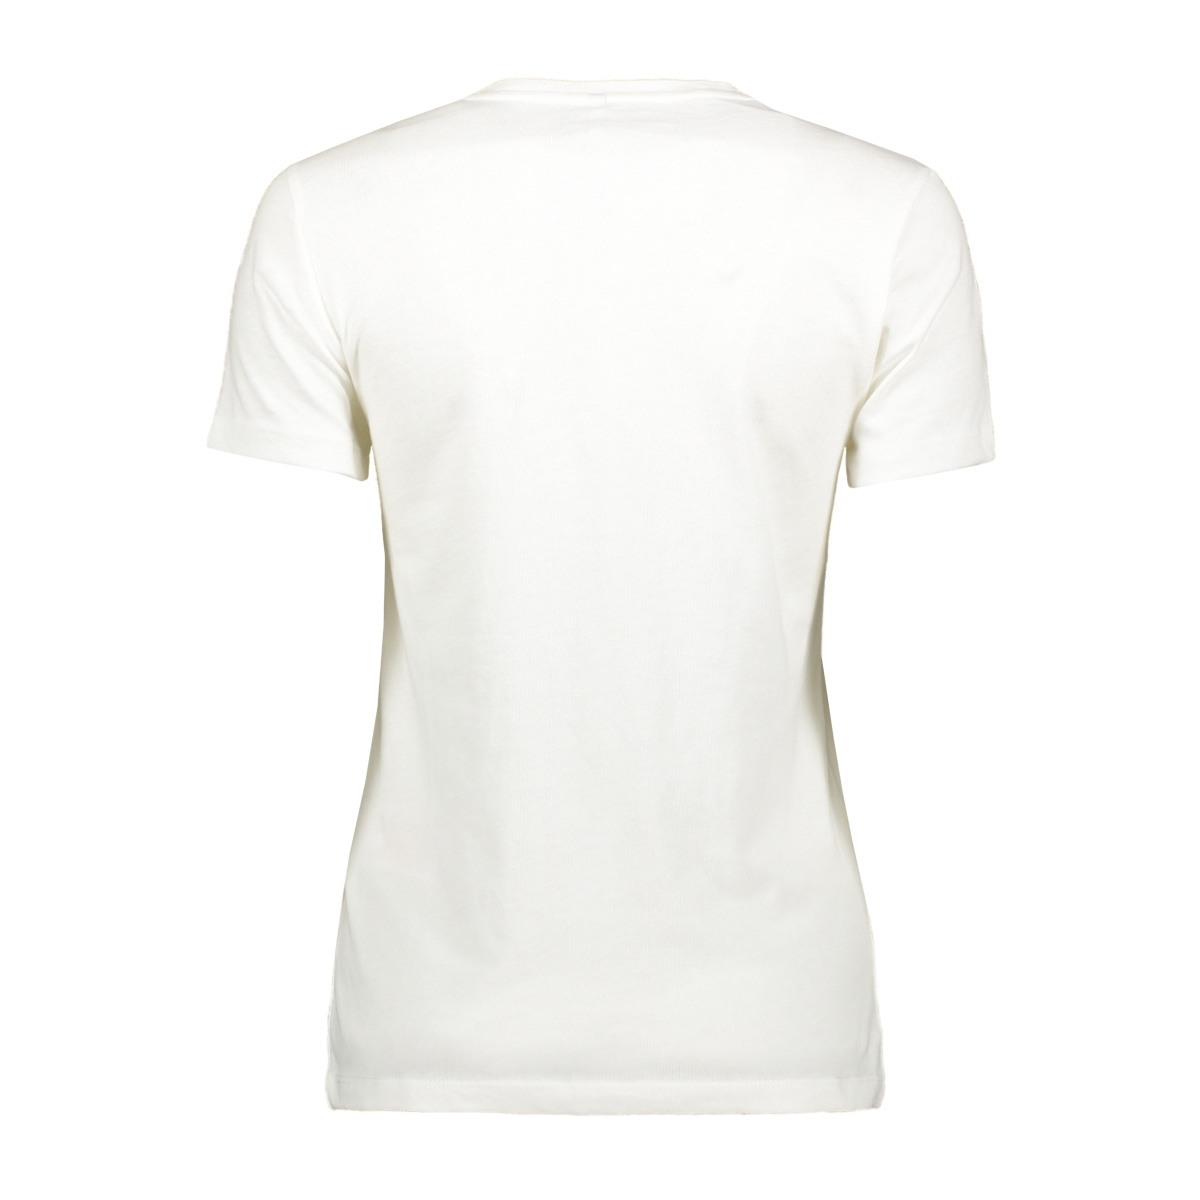 onlmary reg s/s top box jrs 15201238 only t-shirt bright white/please